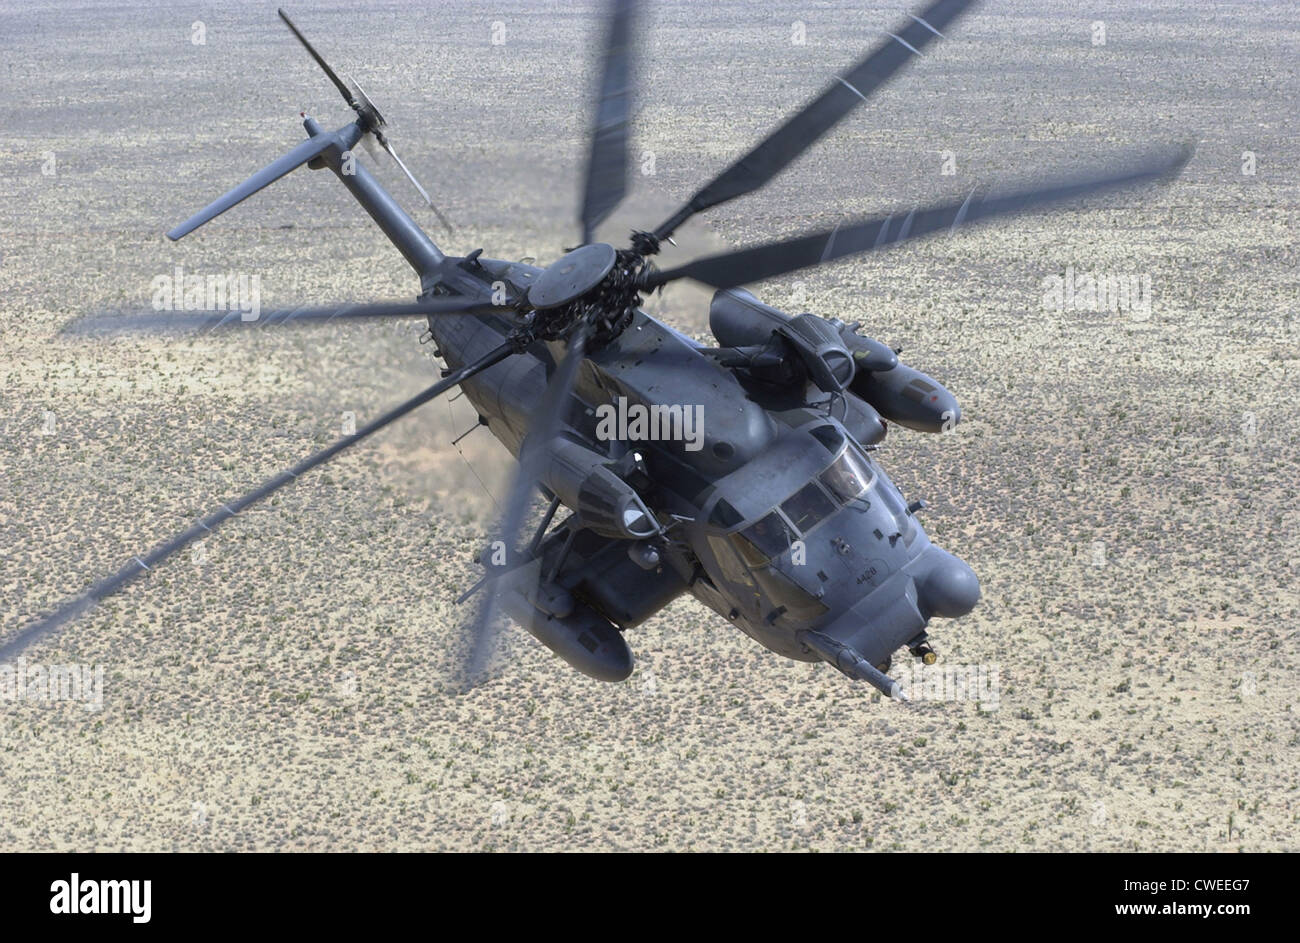 The MH-53J Pave Low III heavy-lift helicopter flies a training mission March 24, 2000 near Kirtland Air Force Base, - Stock Image